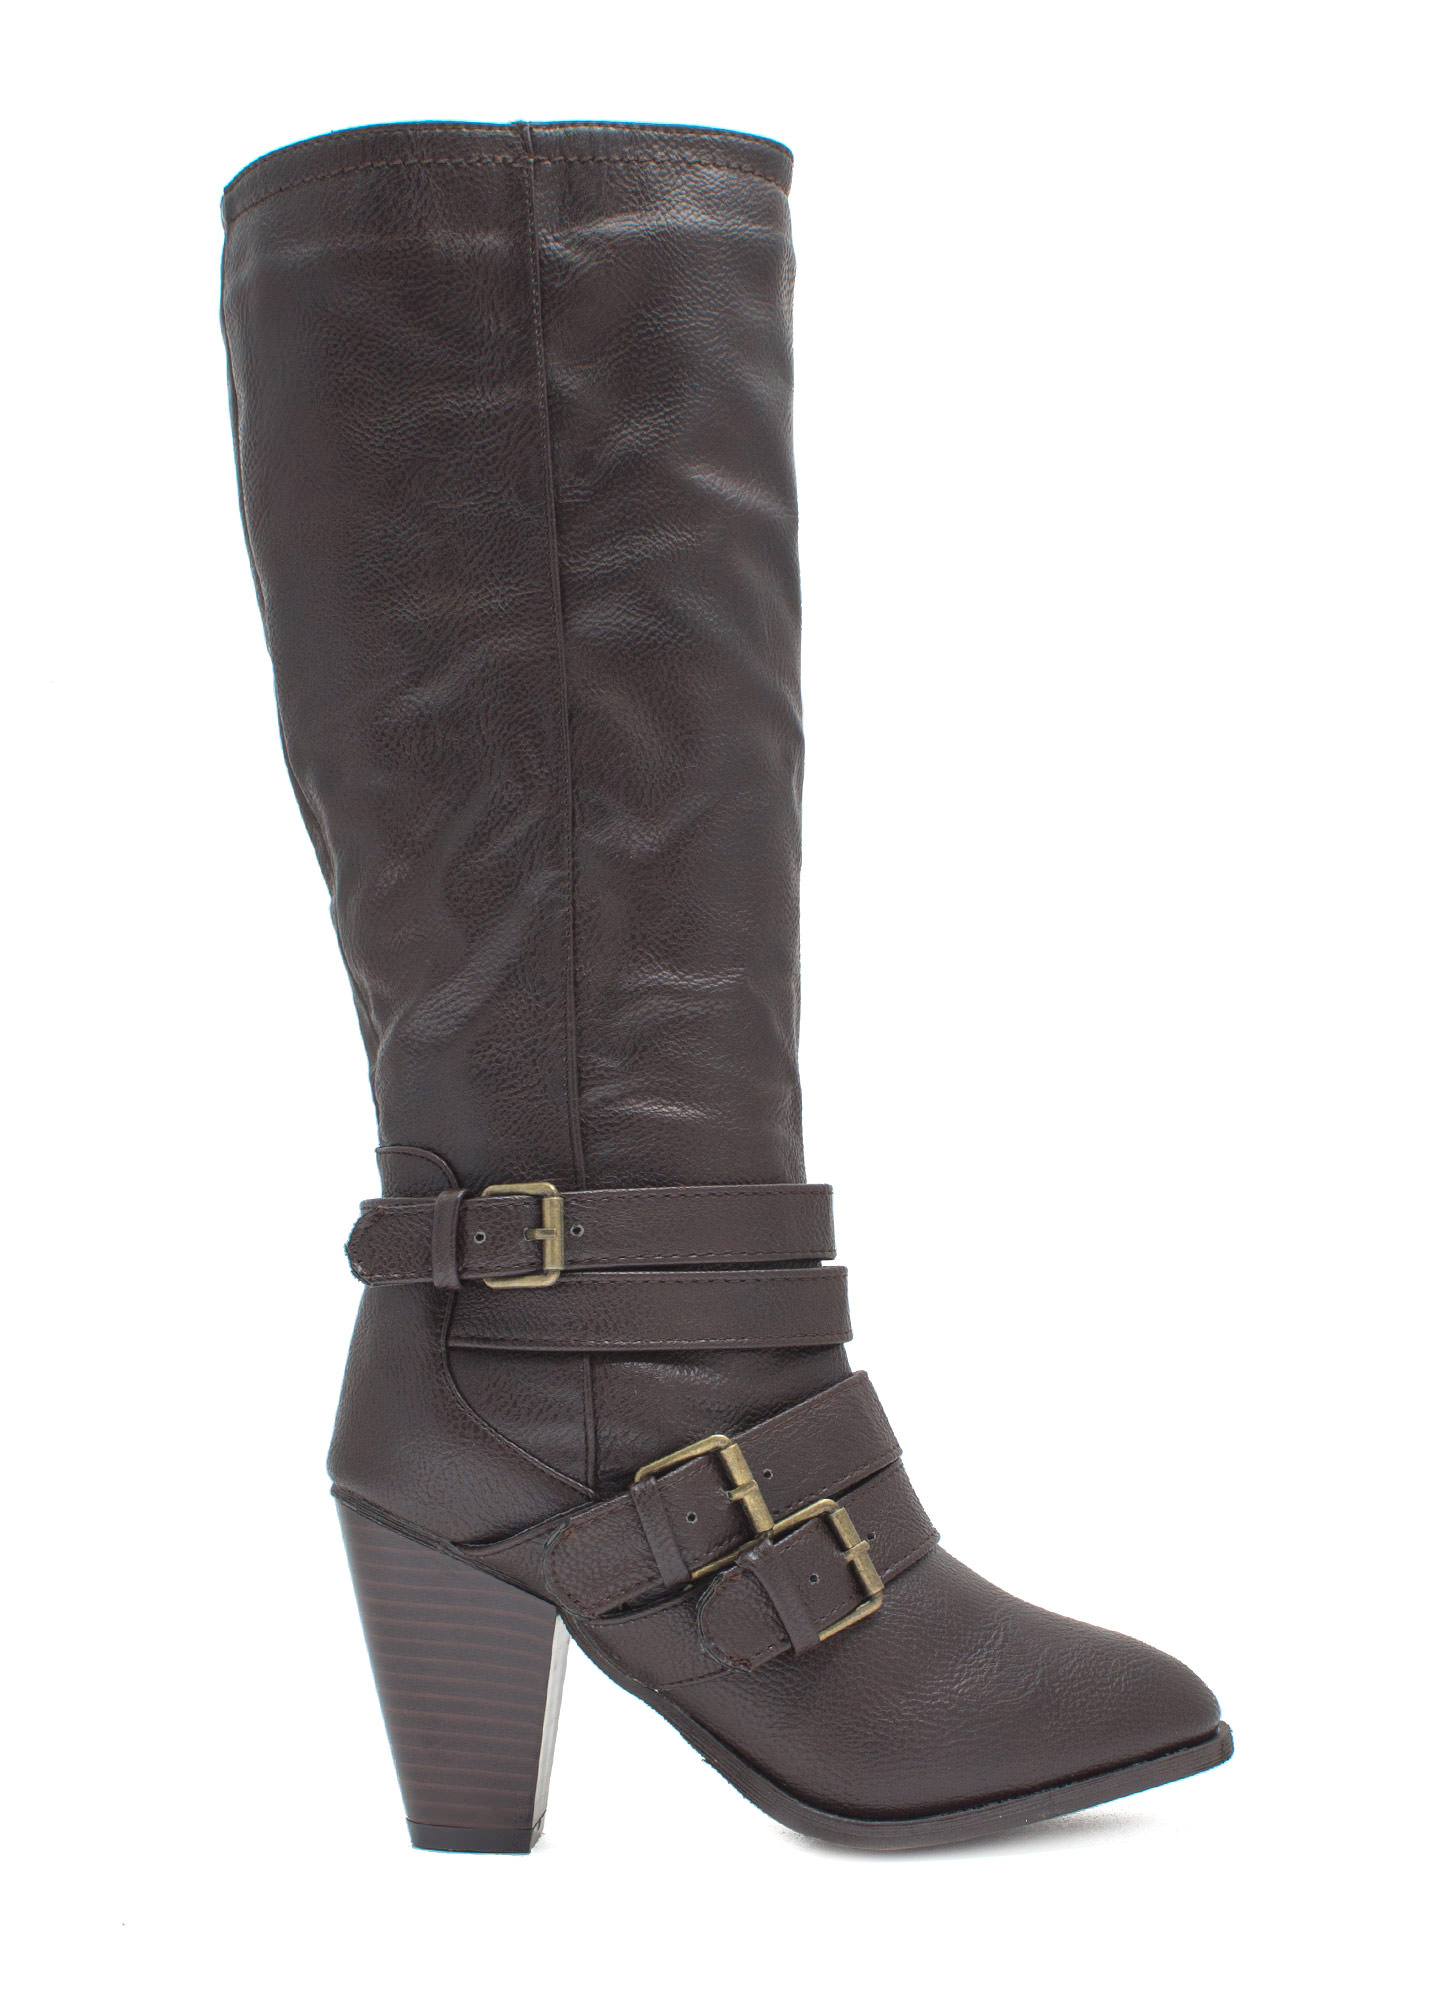 It's A Wrap Heeled Boots BROWN (Final Sale)